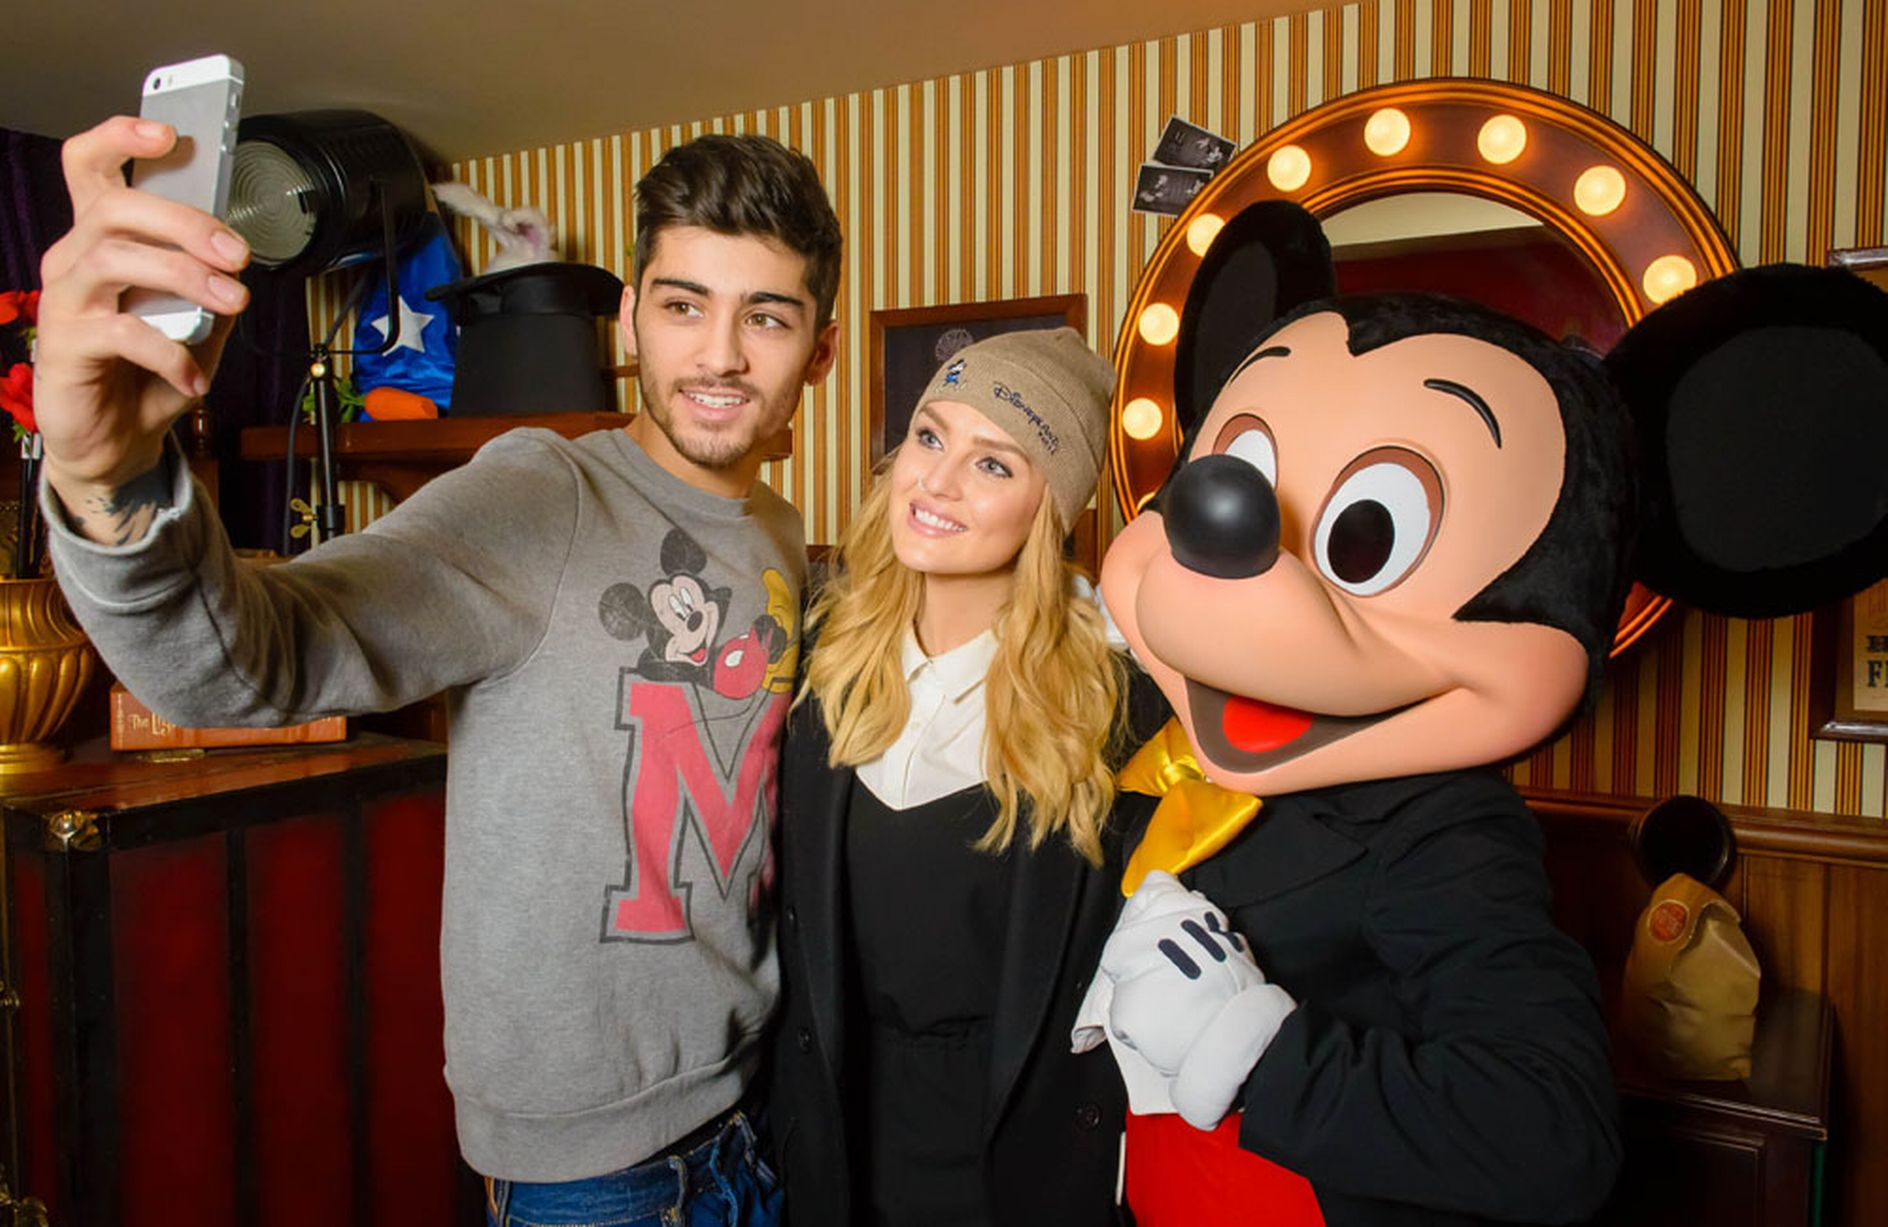 Perrie-Edwards-and-Zayn-Malik-at-Disneyland-Paris